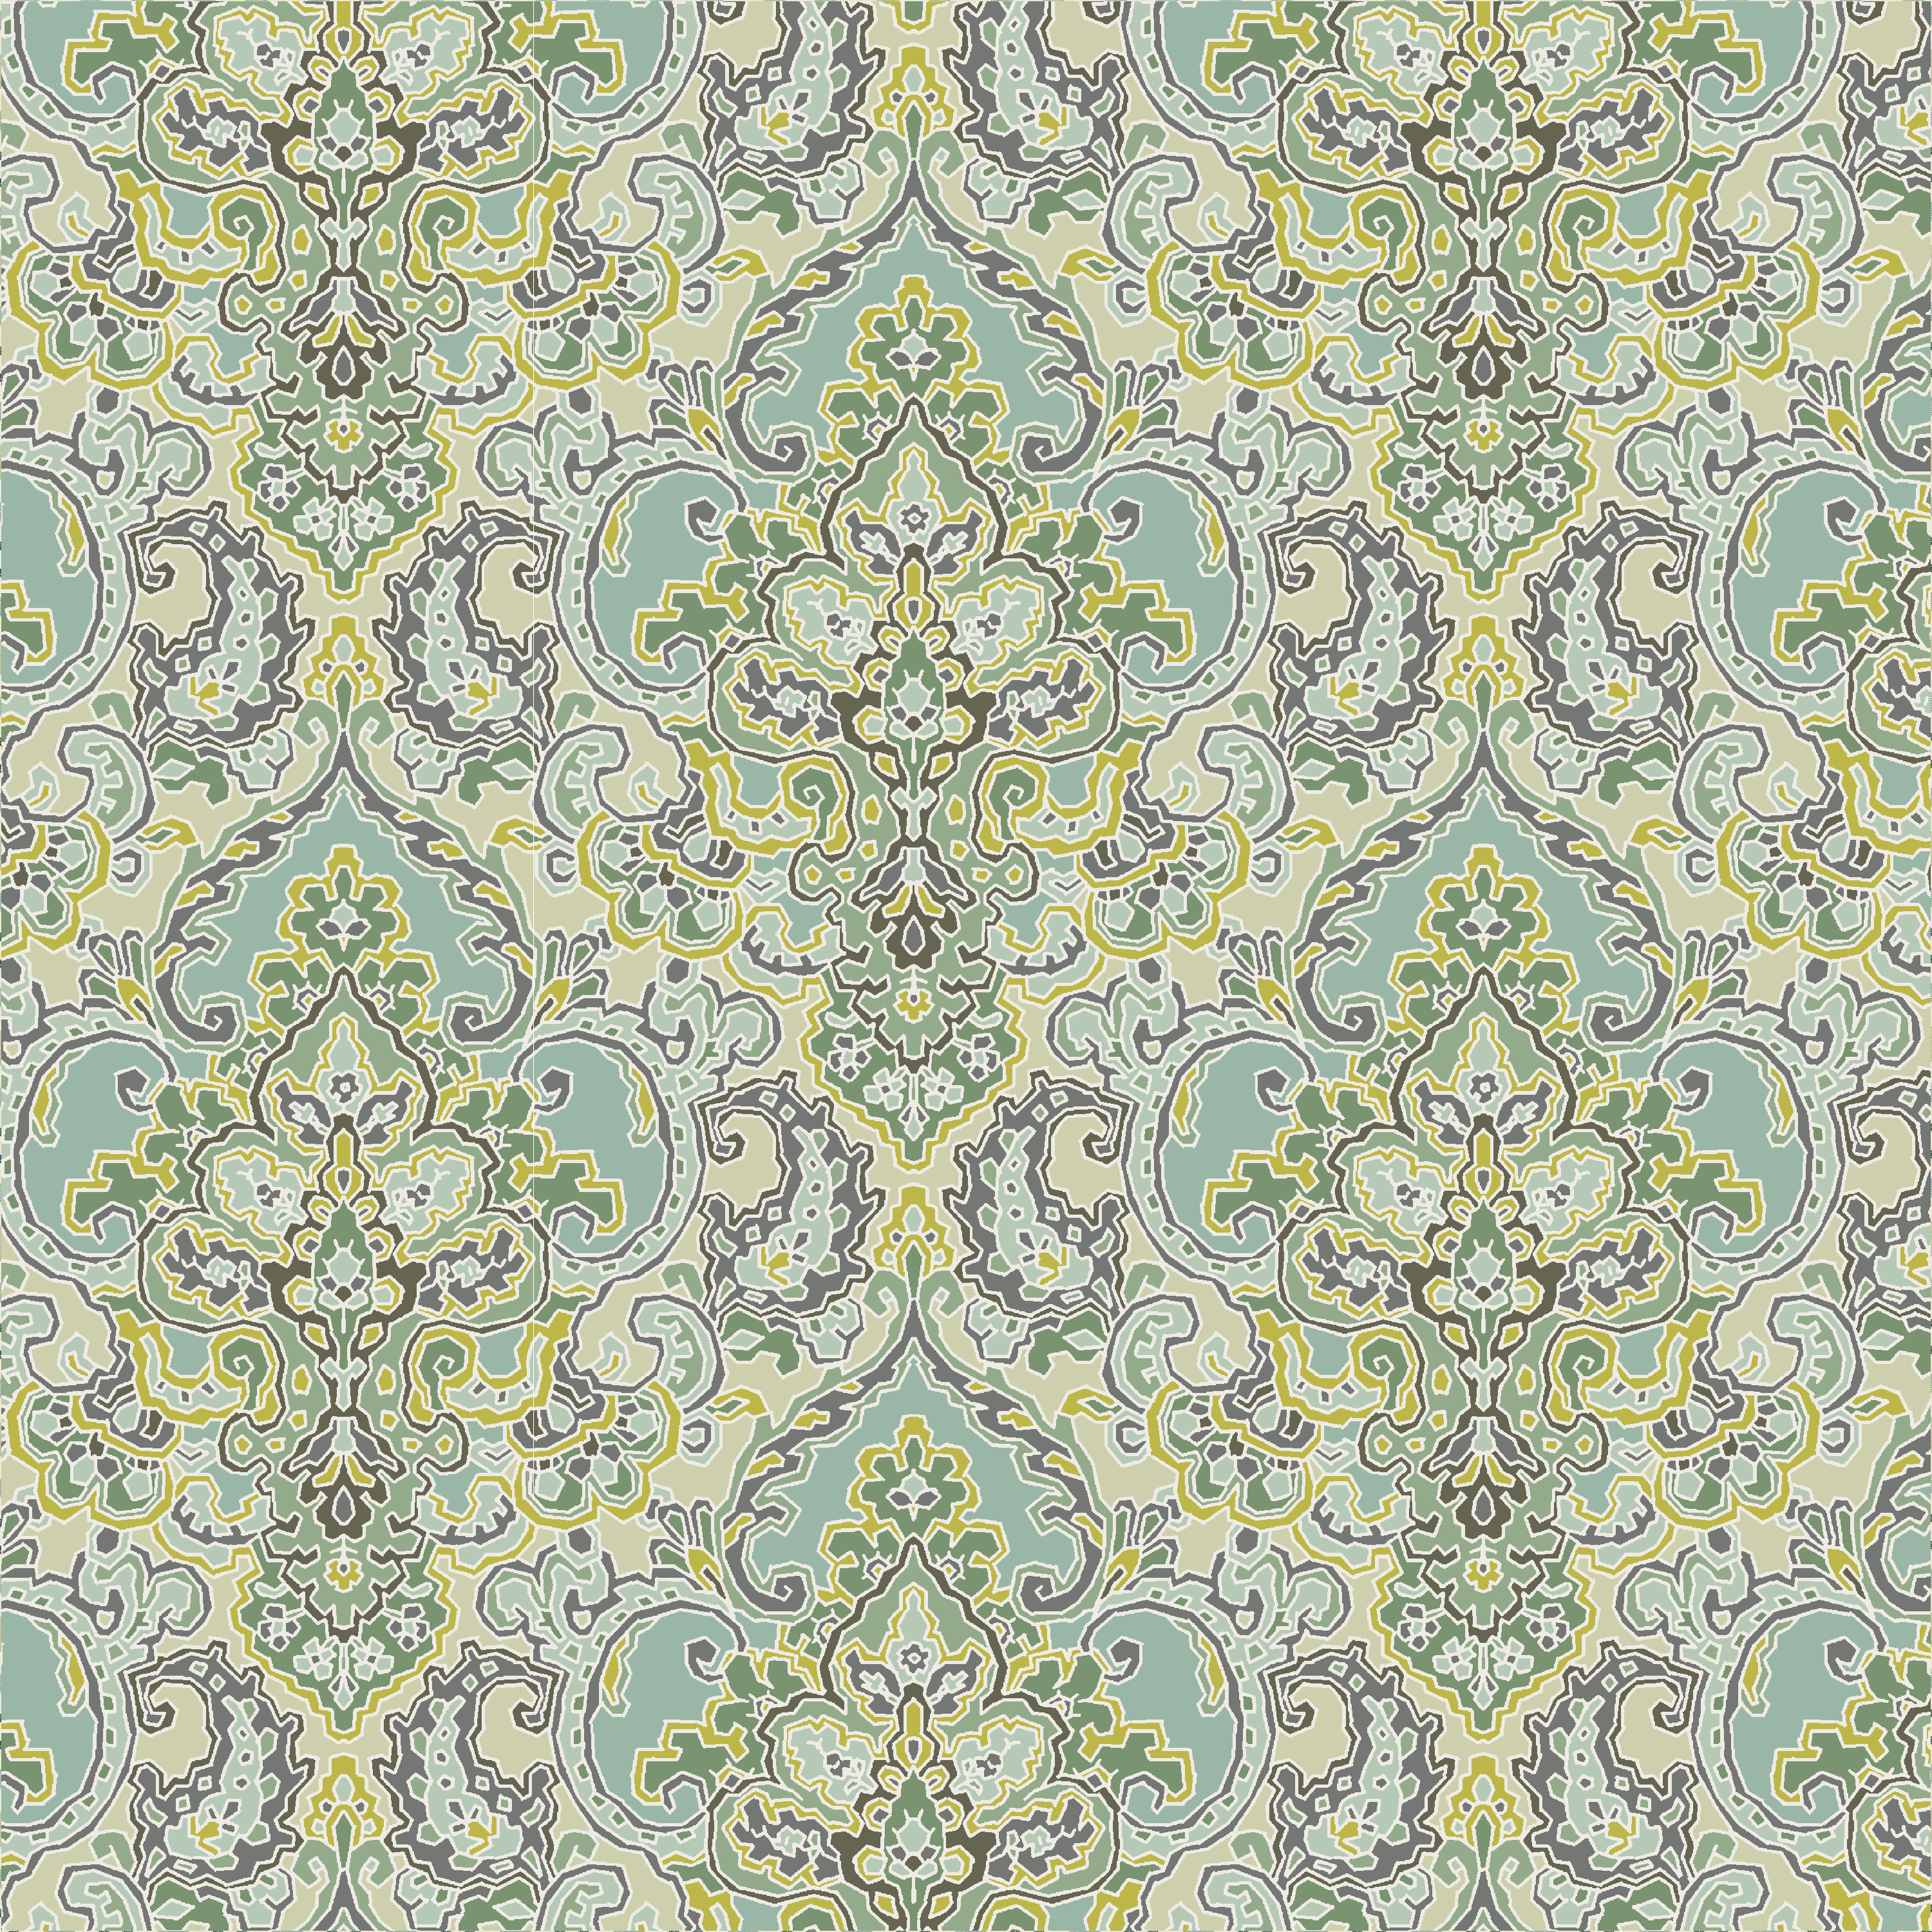 Waverly Inspirations CARPET SPA 100% Cotton Duck Fabric 45'' Wide, 180 Gsm, Quilt Crafts Cut By The Yard